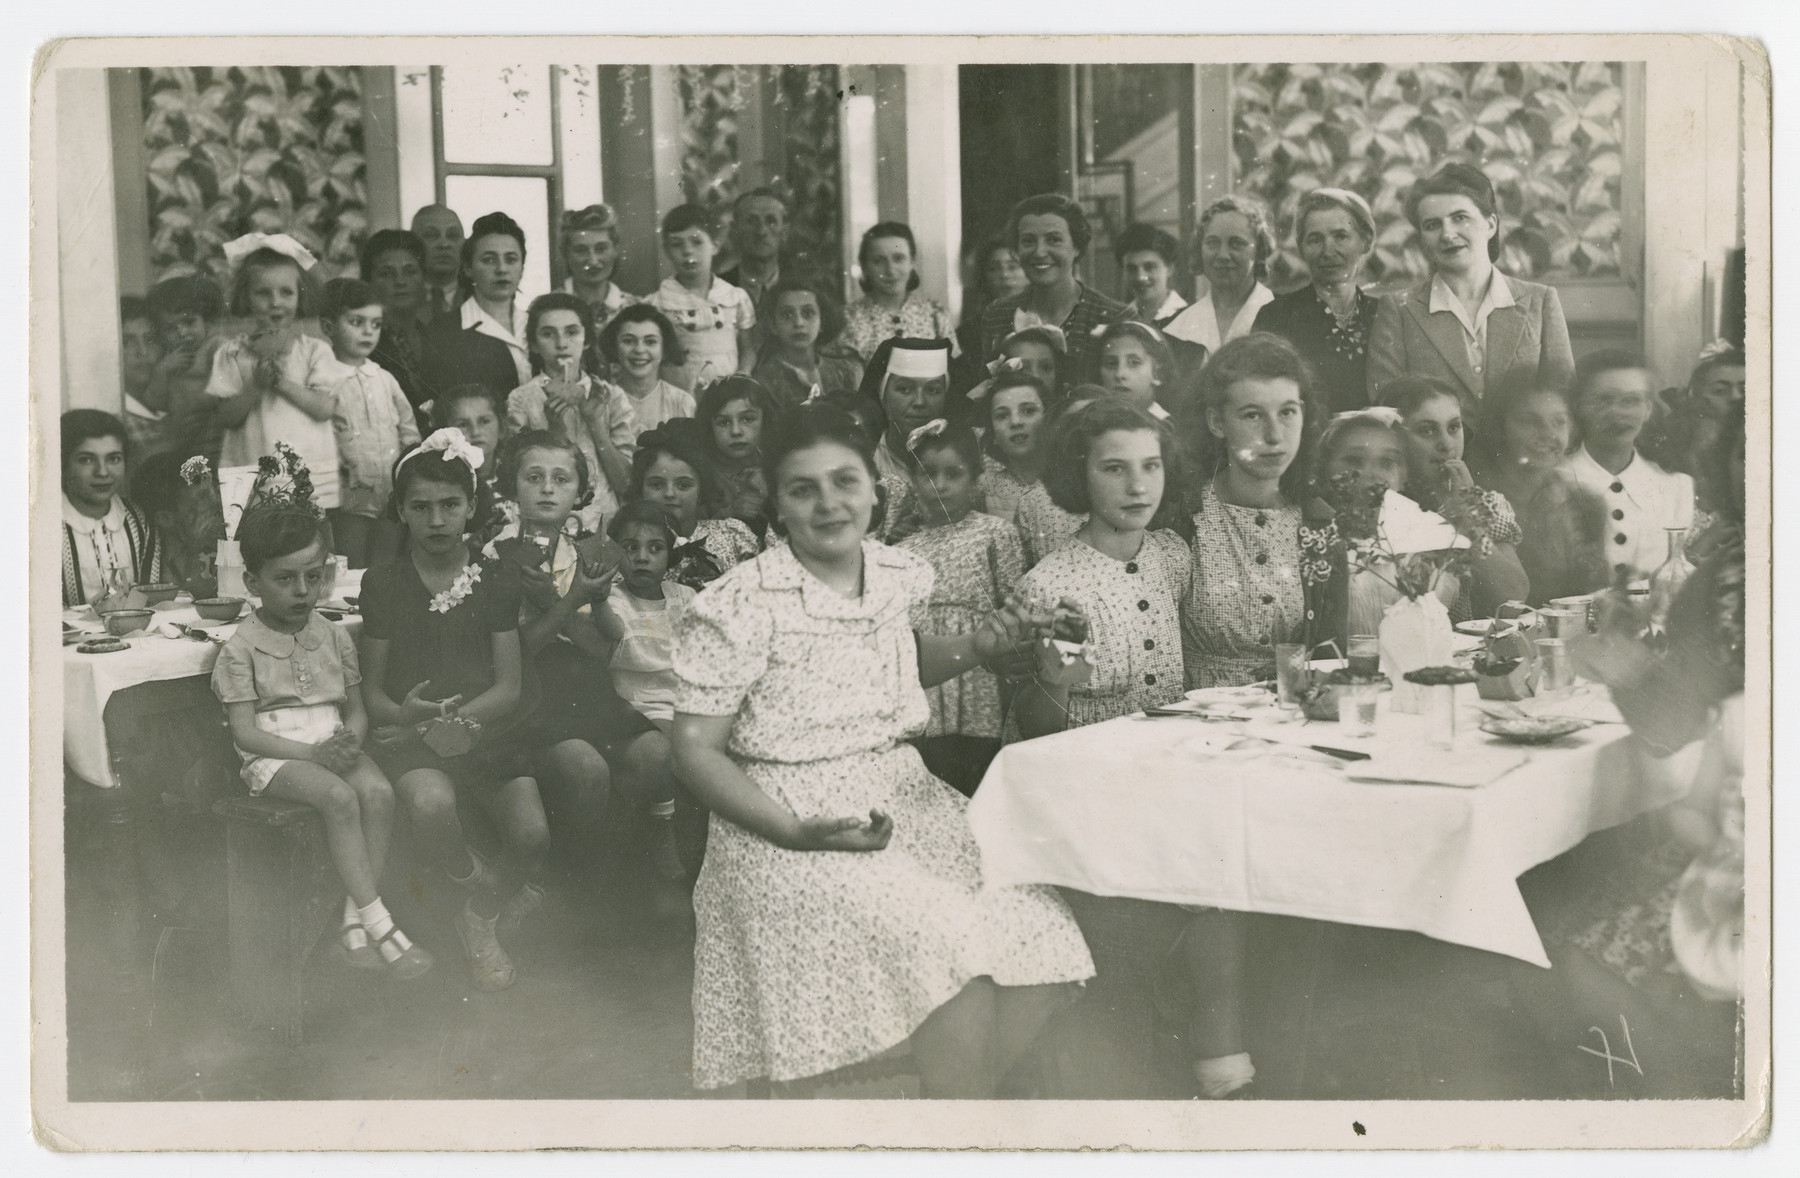 Women and children gather in the dining hall of the Vittel internment camp.  Those pictured include Oskar, Anna Rosalja, Regina, Szyja, Stefanja, Henryjk, Salomon Isak, Madka Feigel, Bernard and Regina.